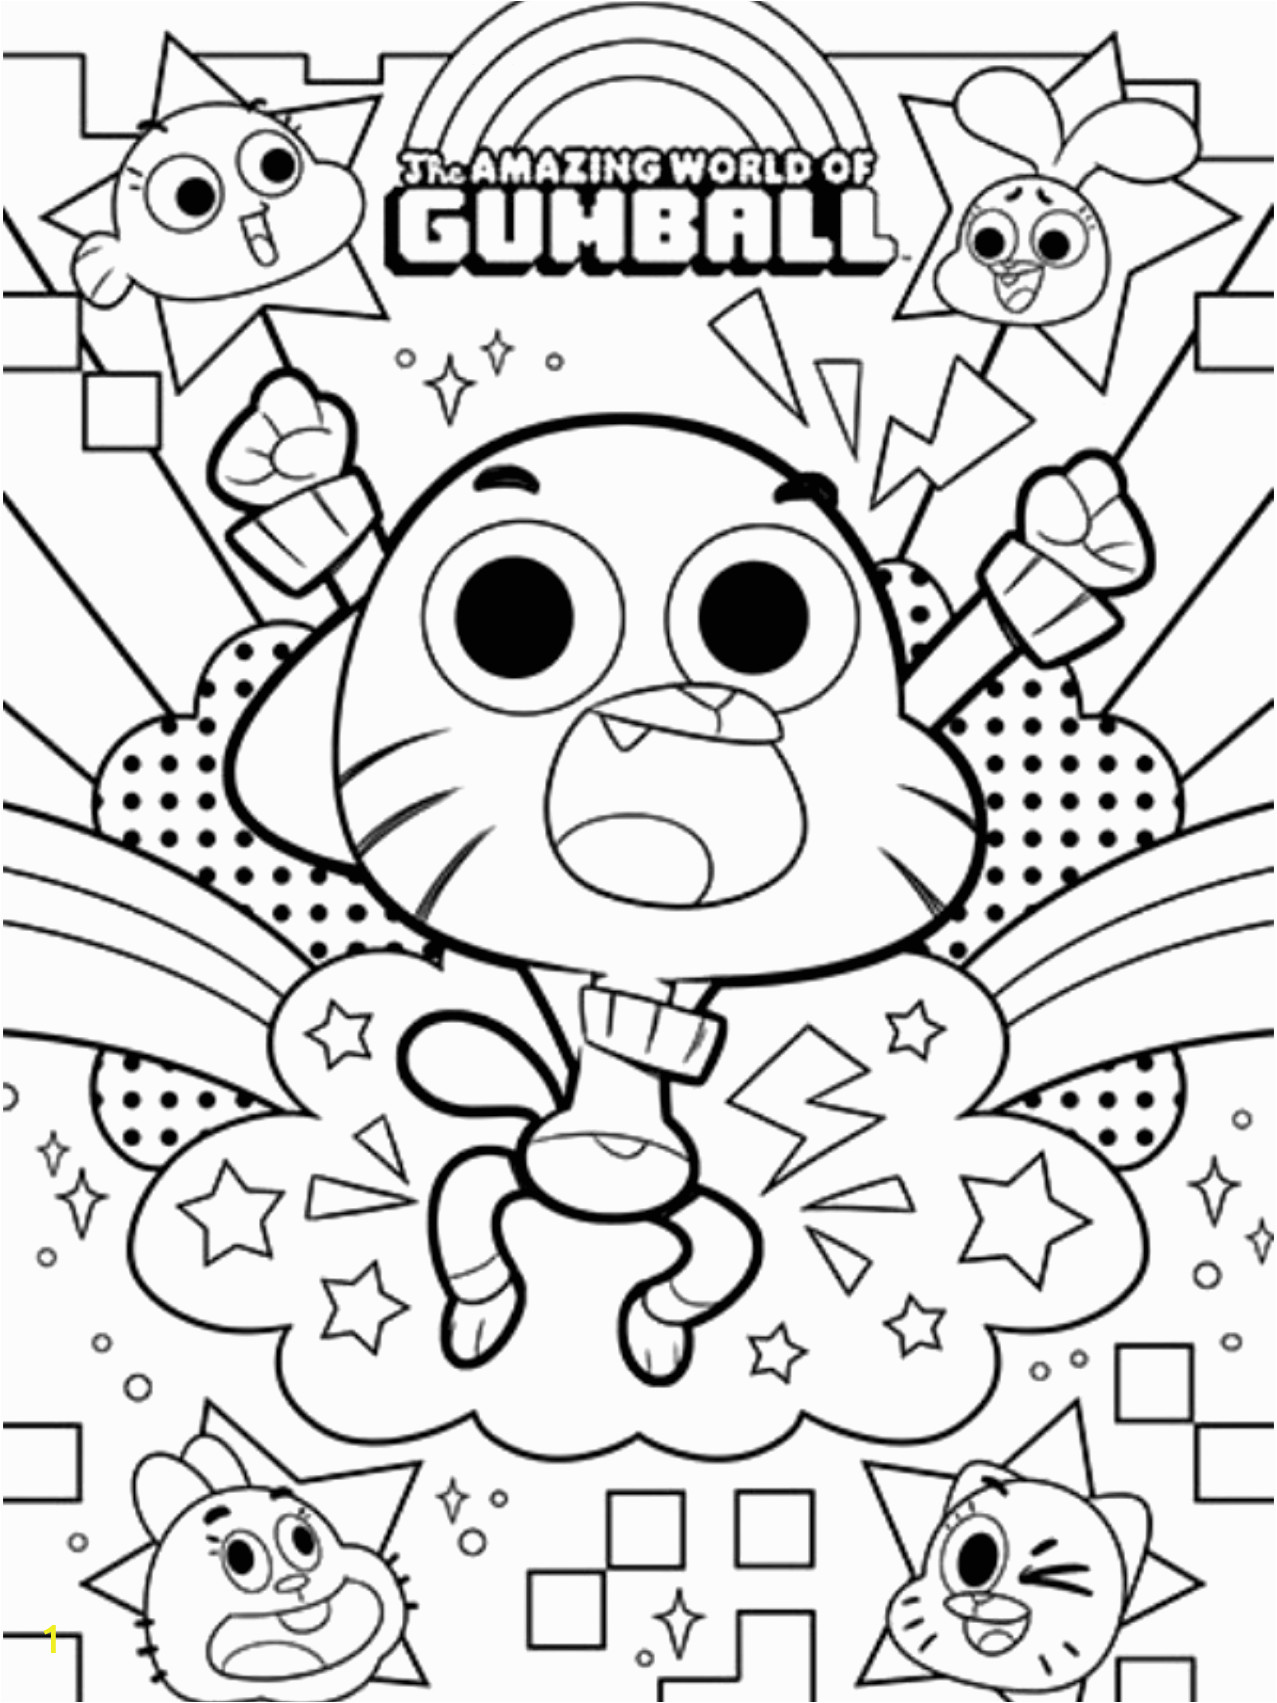 Amazing World Of Gumball Coloring Pages Printable the Amazing World Of Gumball Coloring Pages On